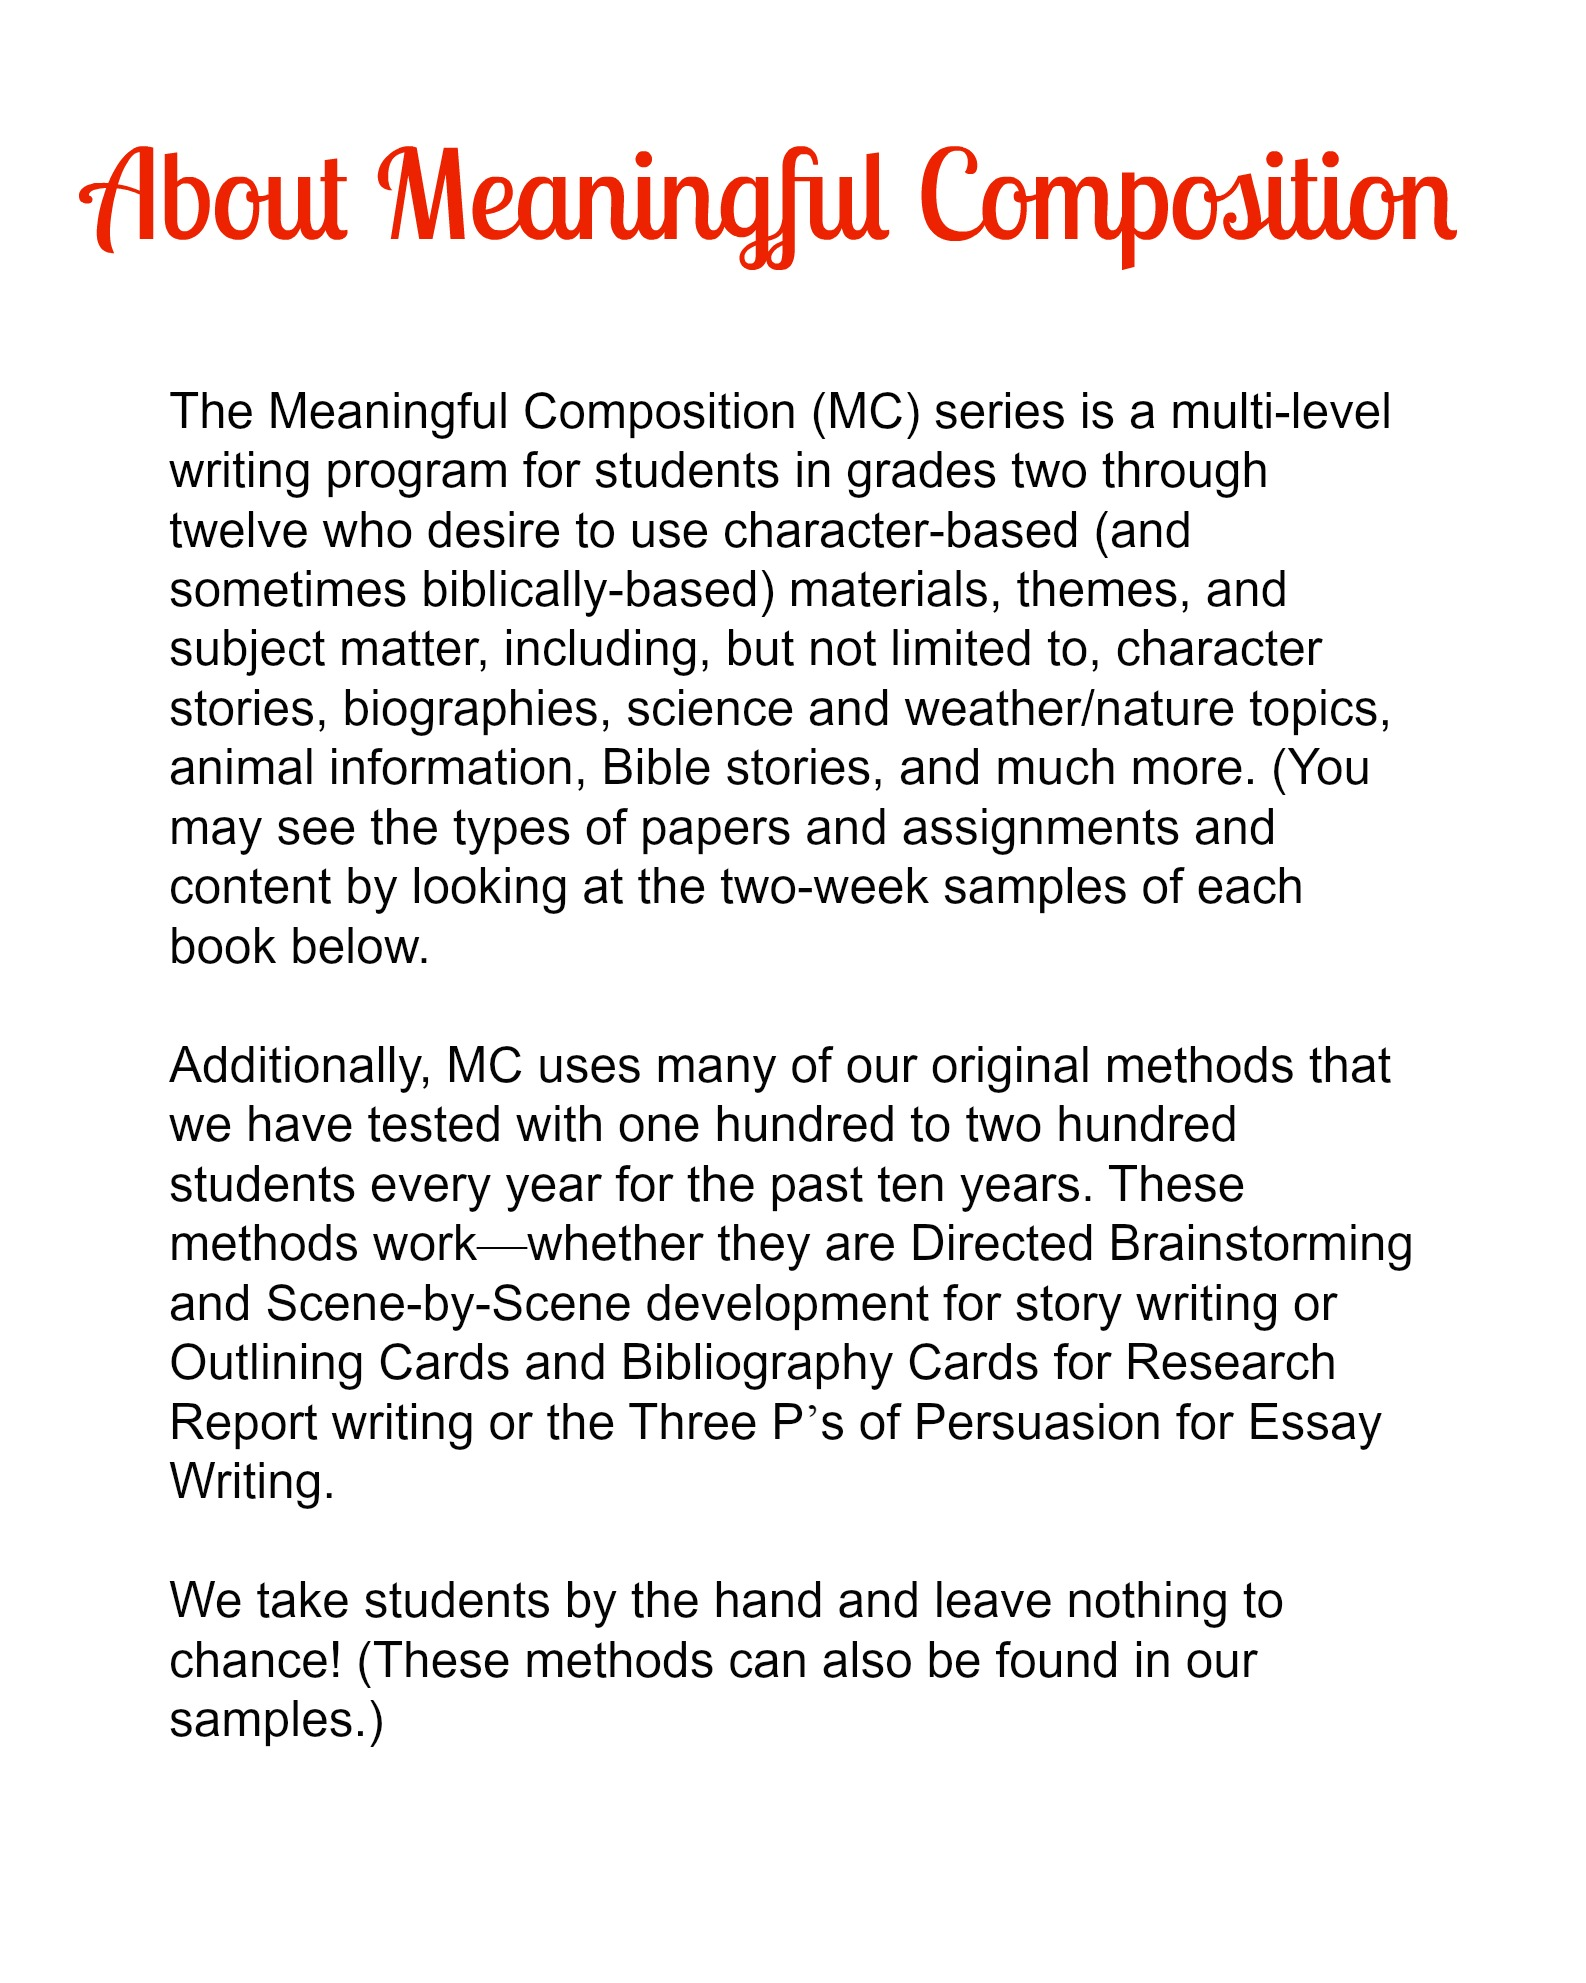 025 Expository Essays Of Introductions Creative Writing Course Paragraph Persuasive On Bullying About Meaningful Compos Cyber How To Prevent Five Stupendous Examples For 5th Grade Essay 11 High School Pdf Full